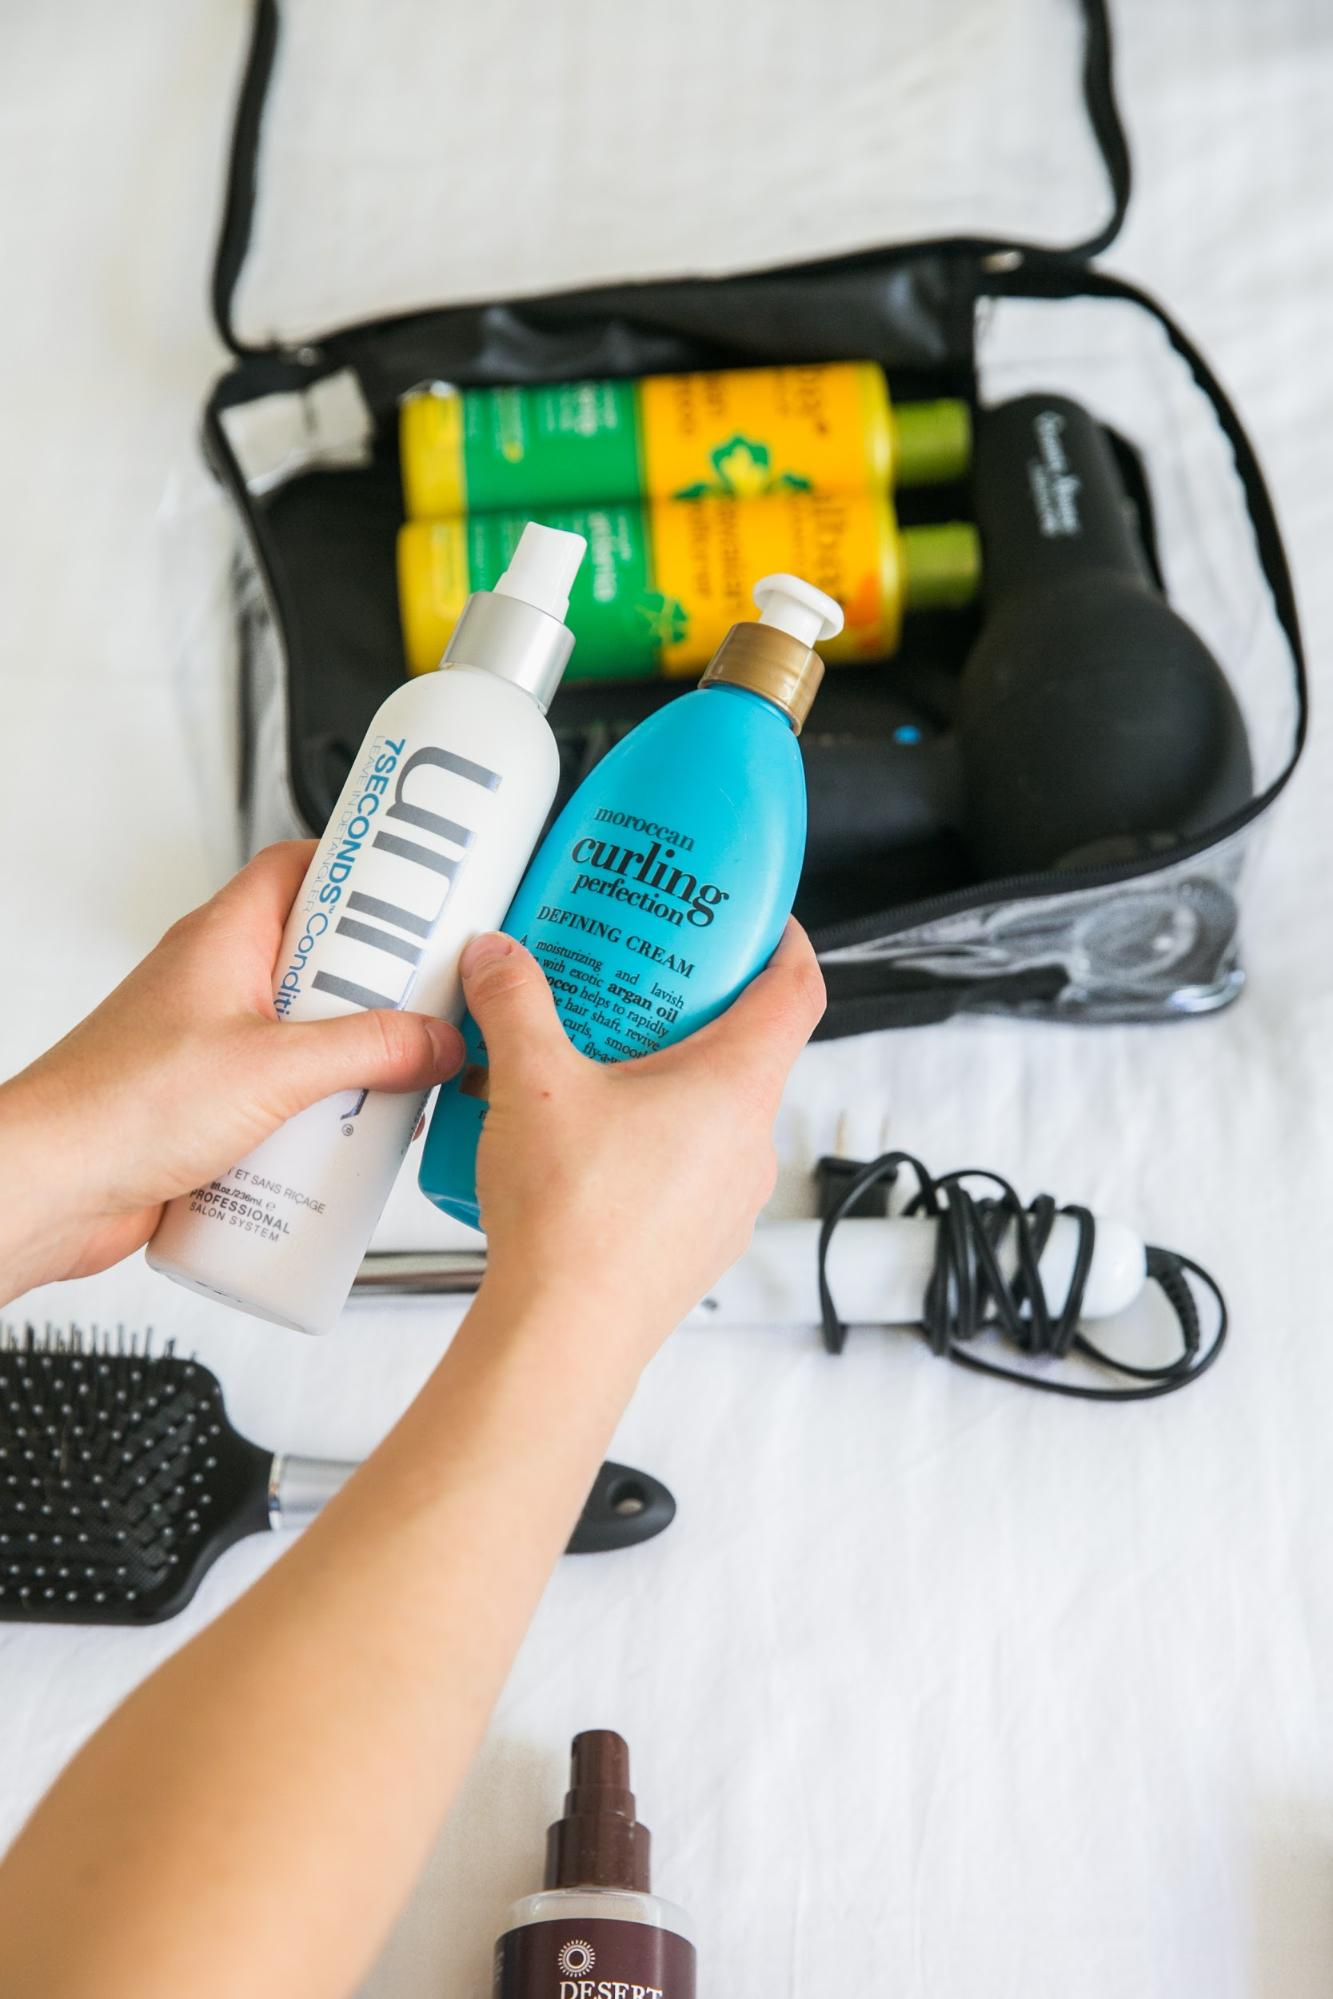 Leave-in conditioner and curling cream for hair travel essentials